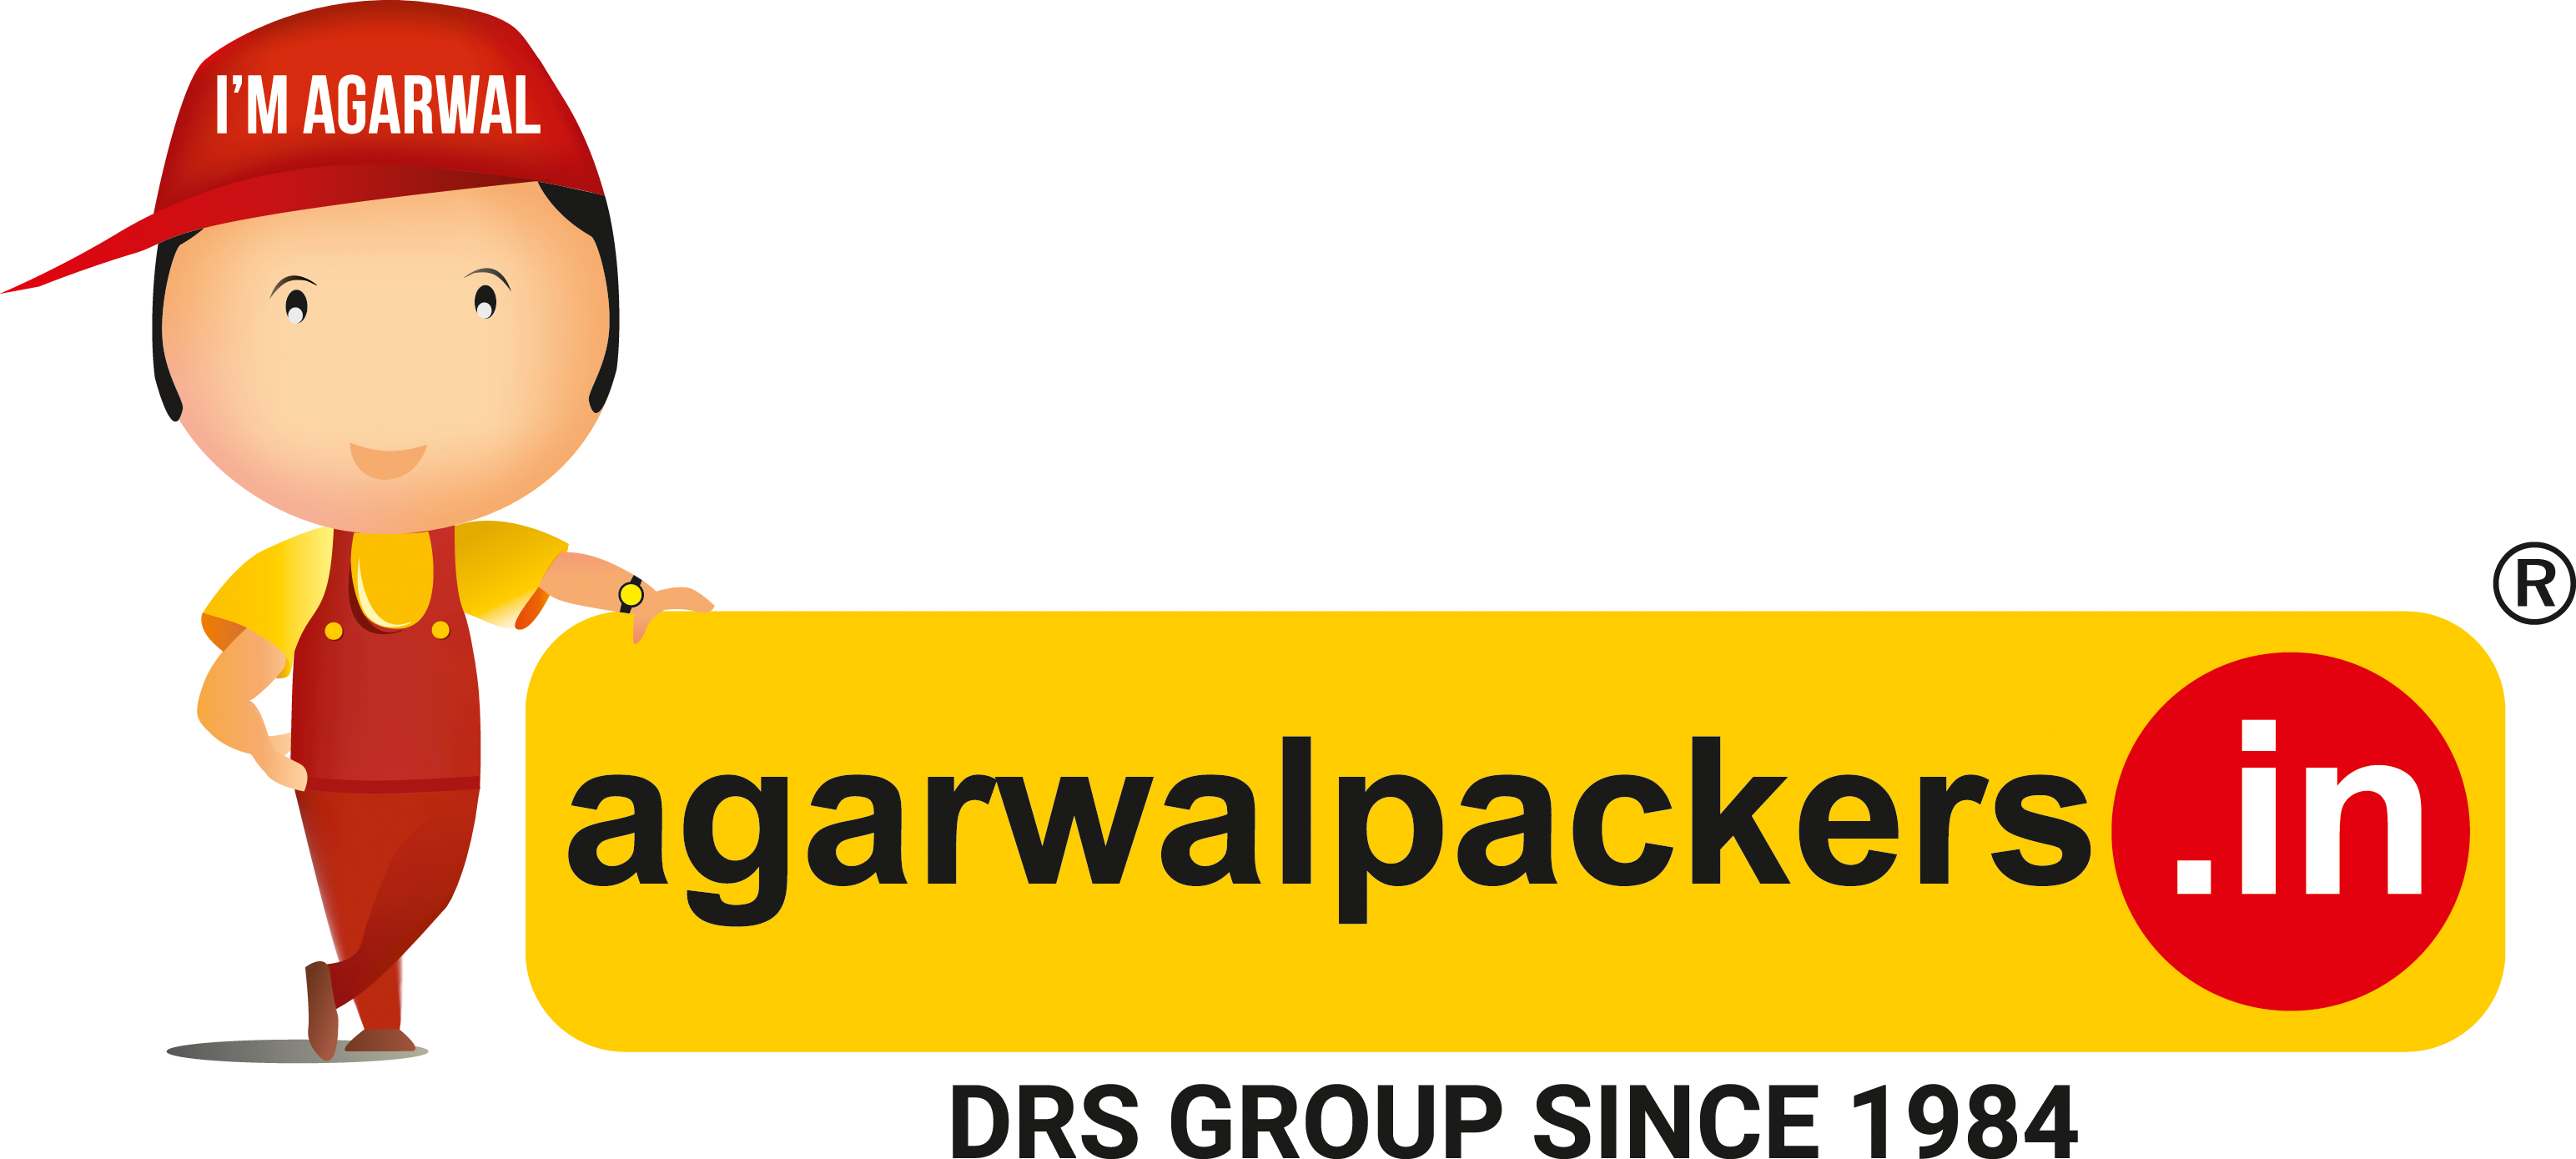 Agarwal Packers and Movers Image